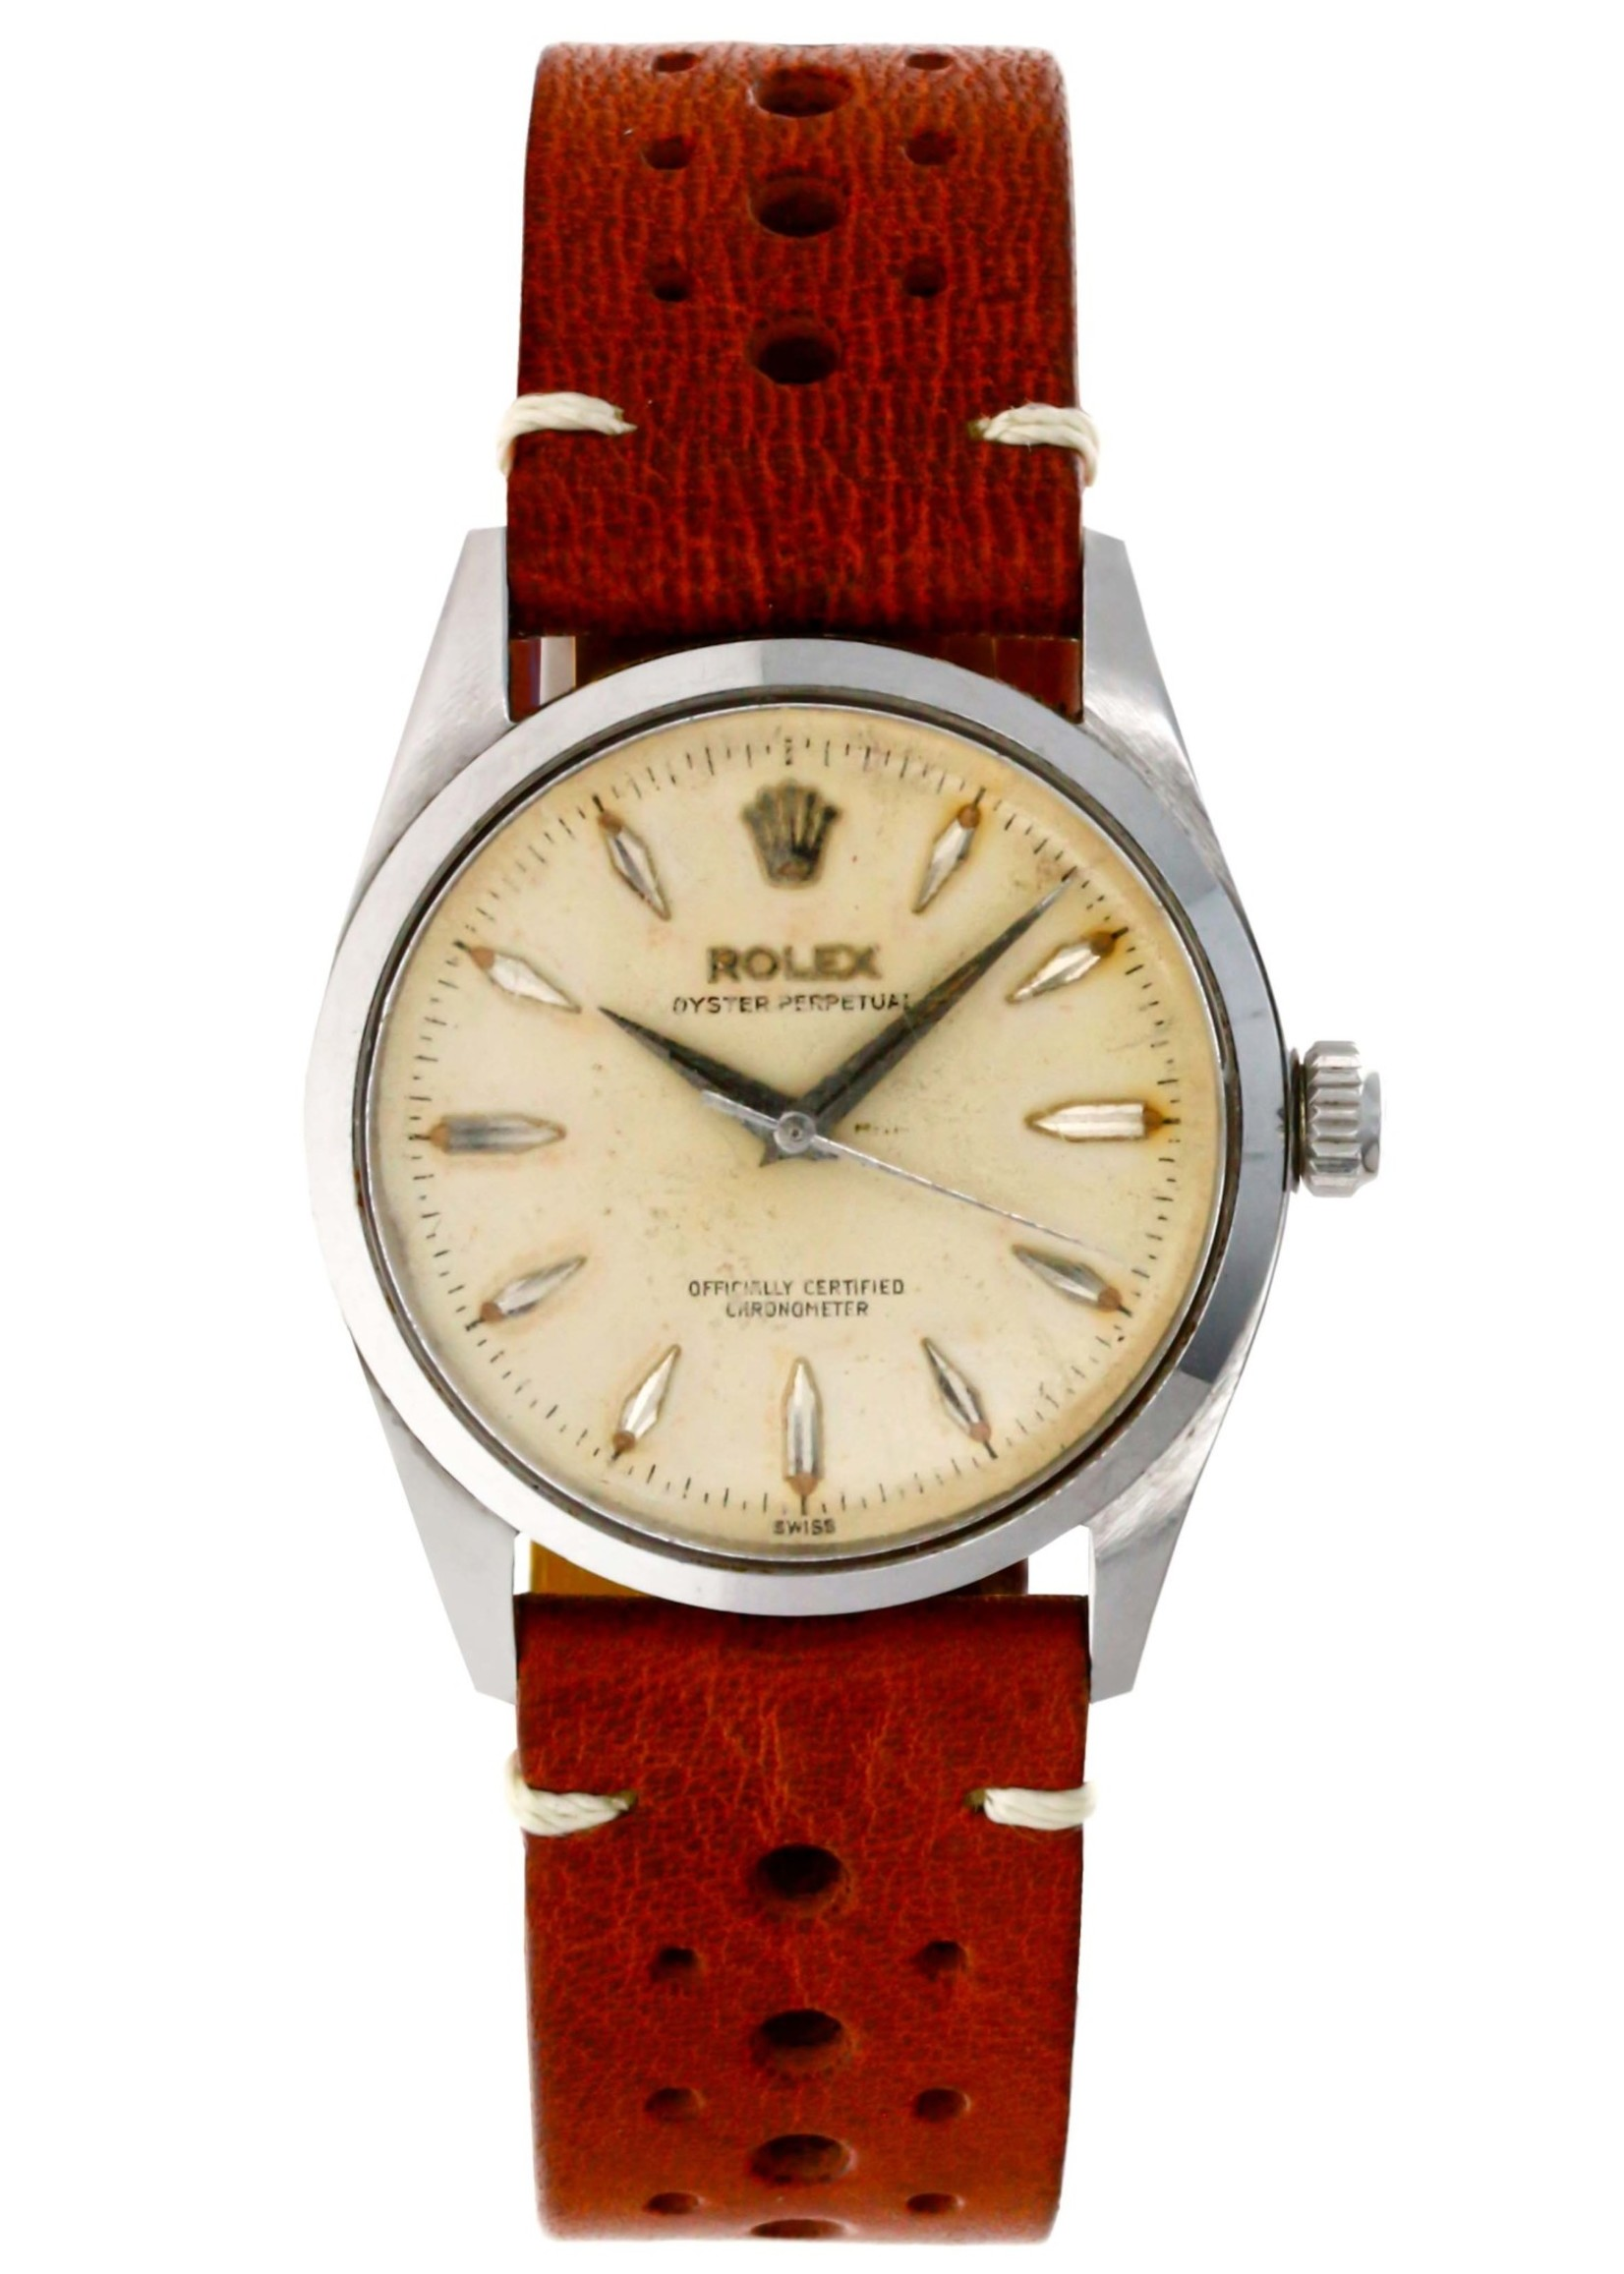 Rolex ROLEX OYSTER PERPETUAL VINTAGE (1945)